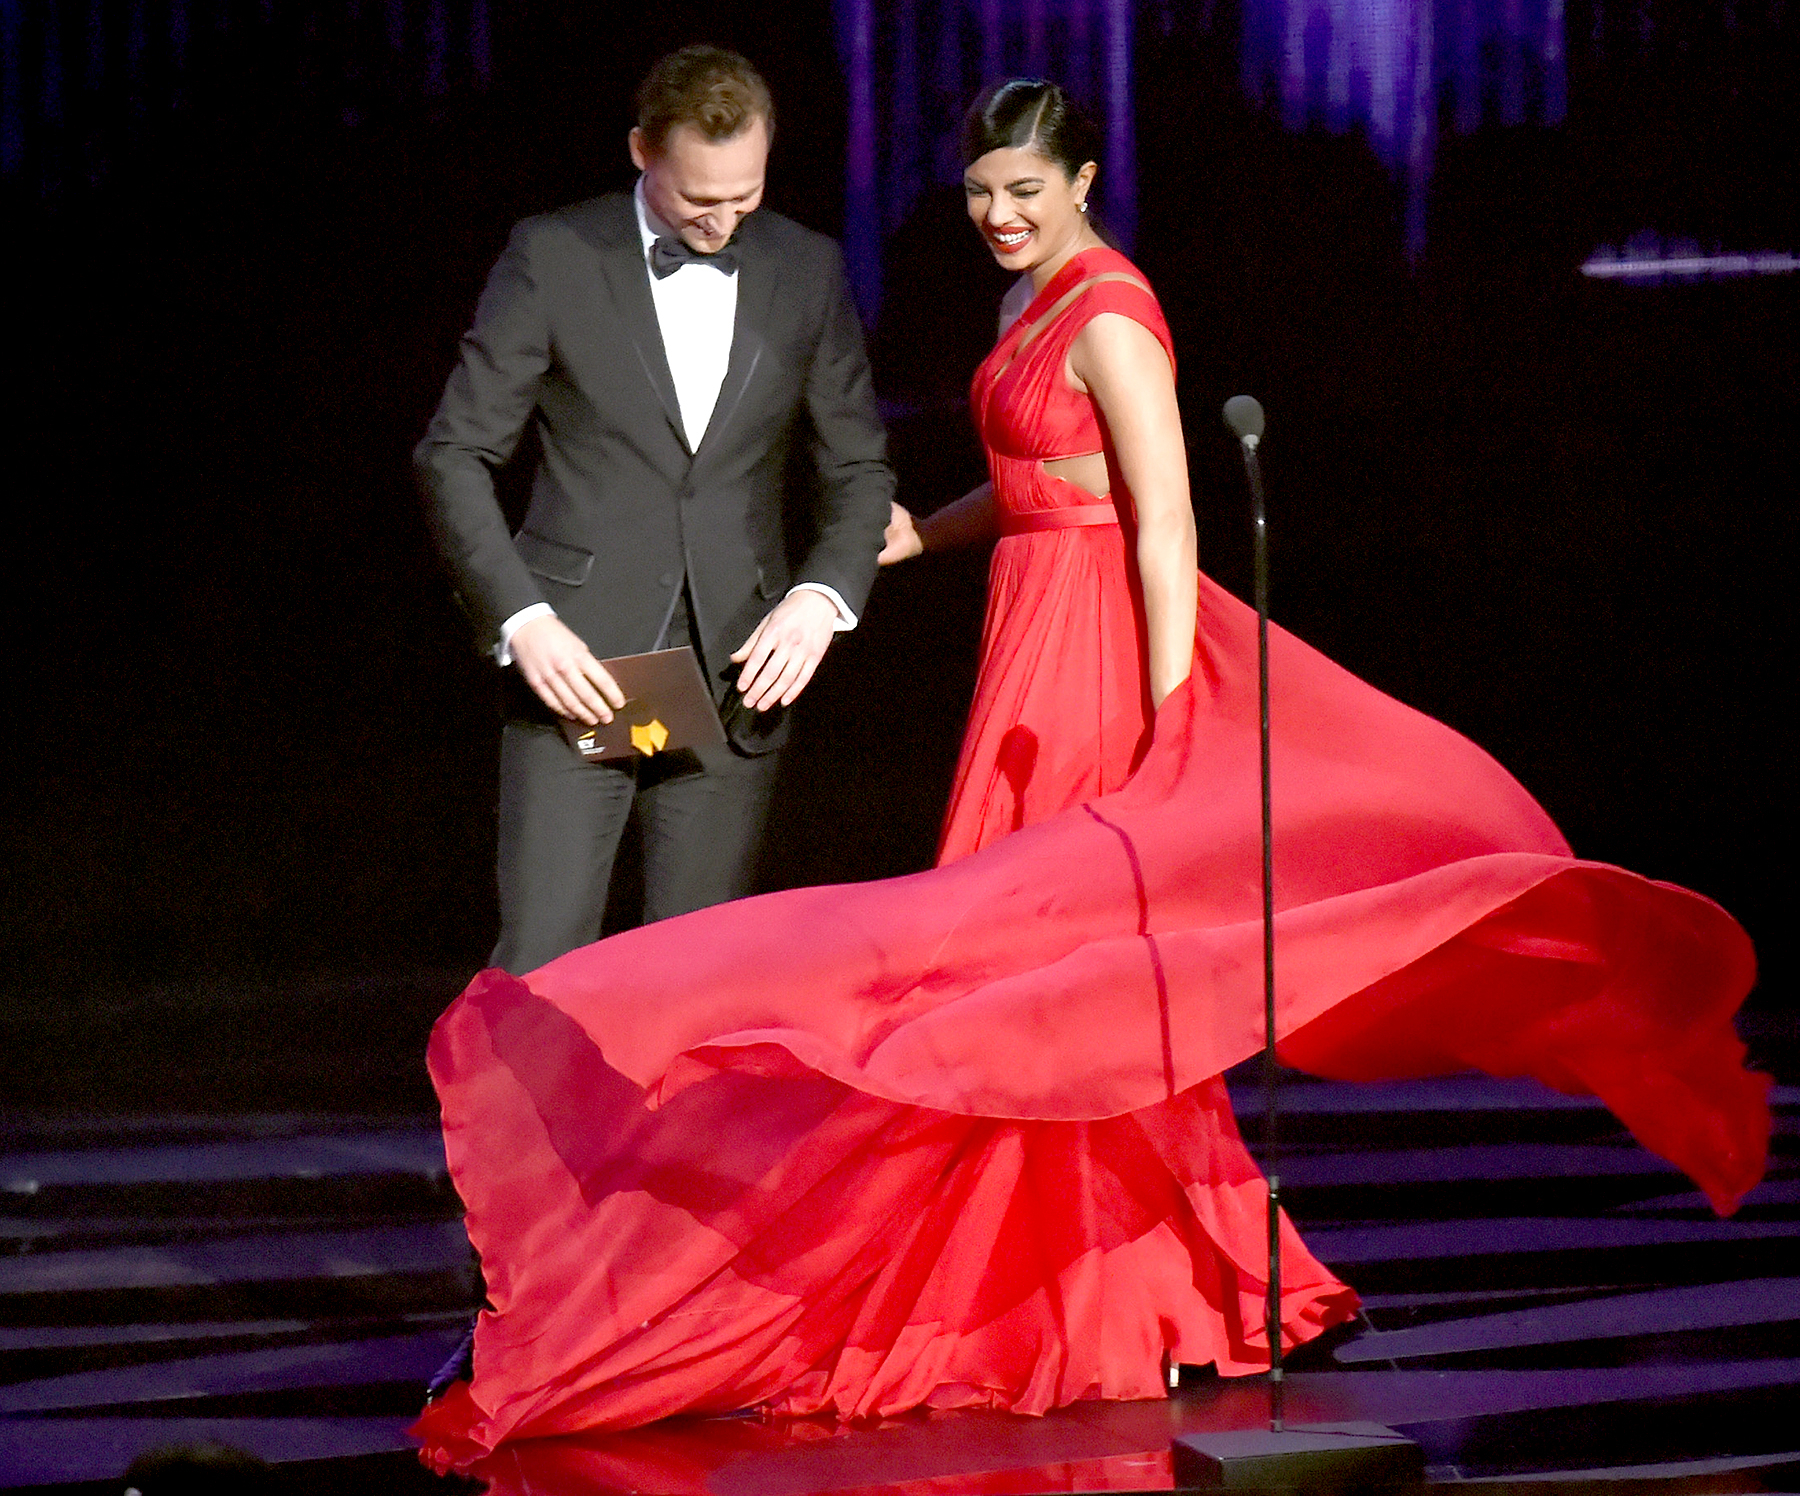 Tom Hiddleston and Priyanka Chopra speak onstage during the 68th Annual Primetime Emmy Awards.